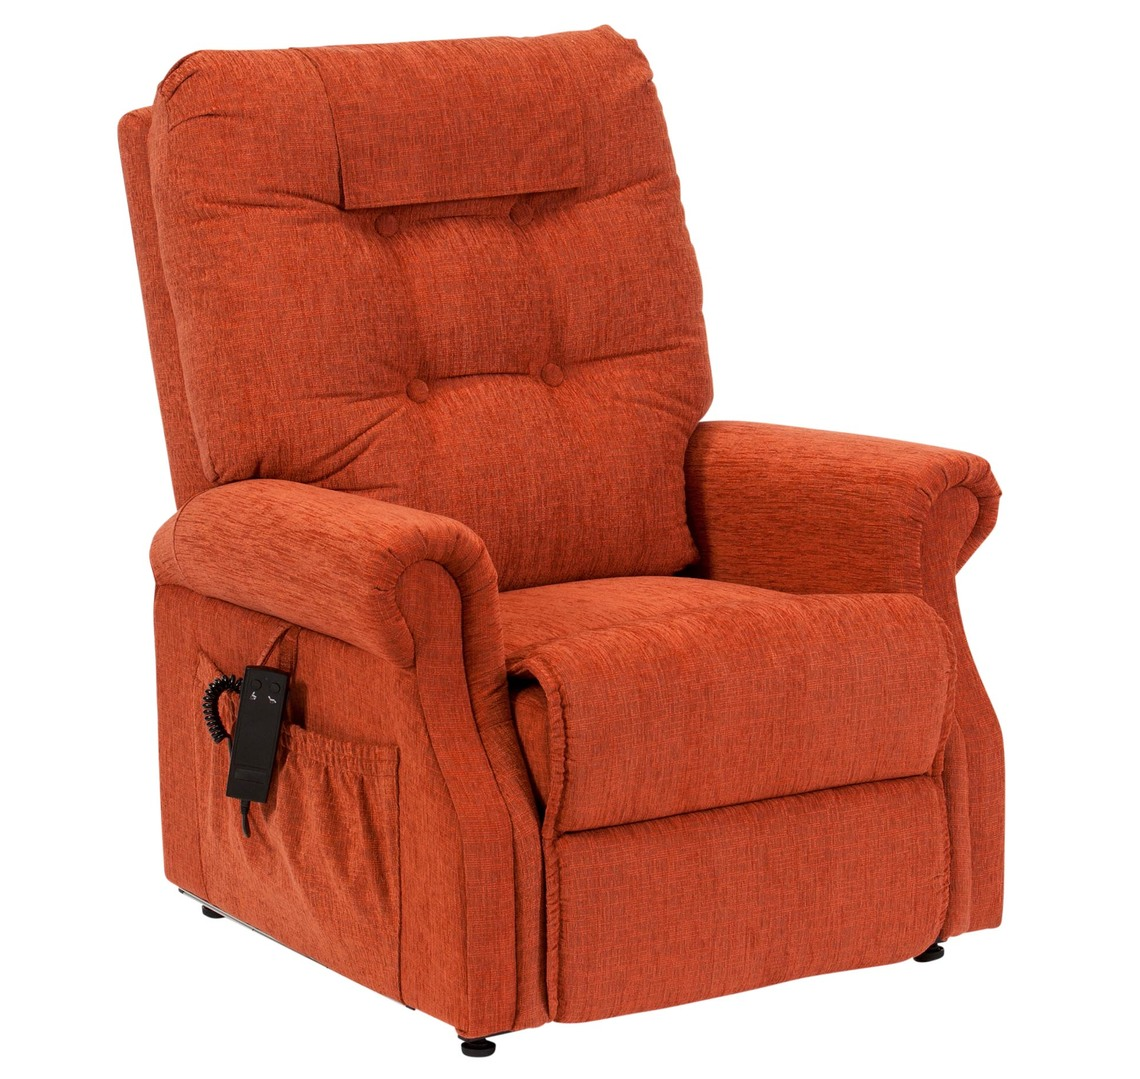 furniture | rise-and-recliners